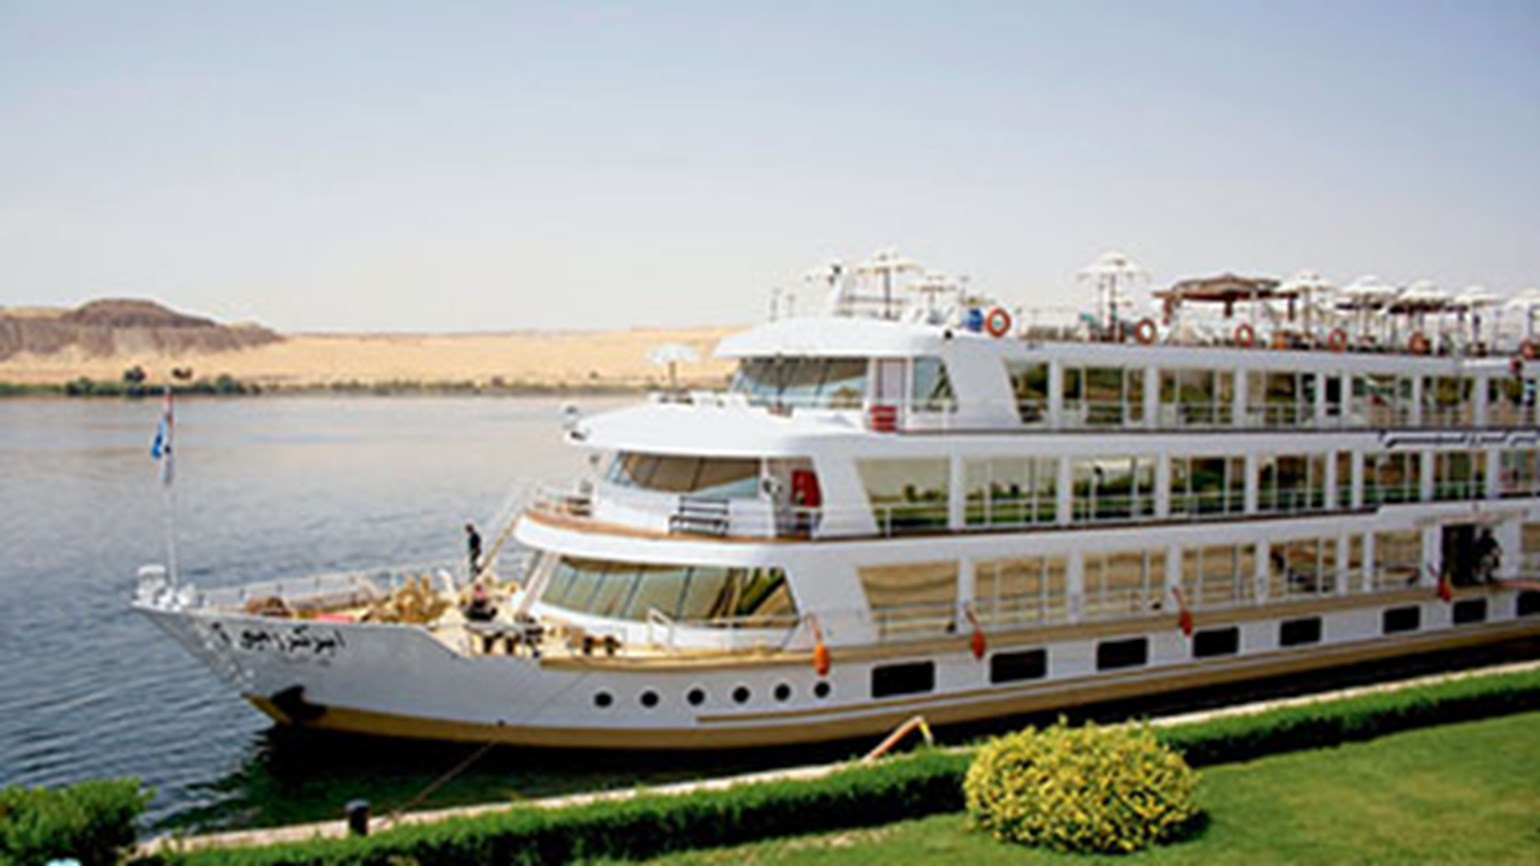 With A&K, 4 degrees of Nile luxury